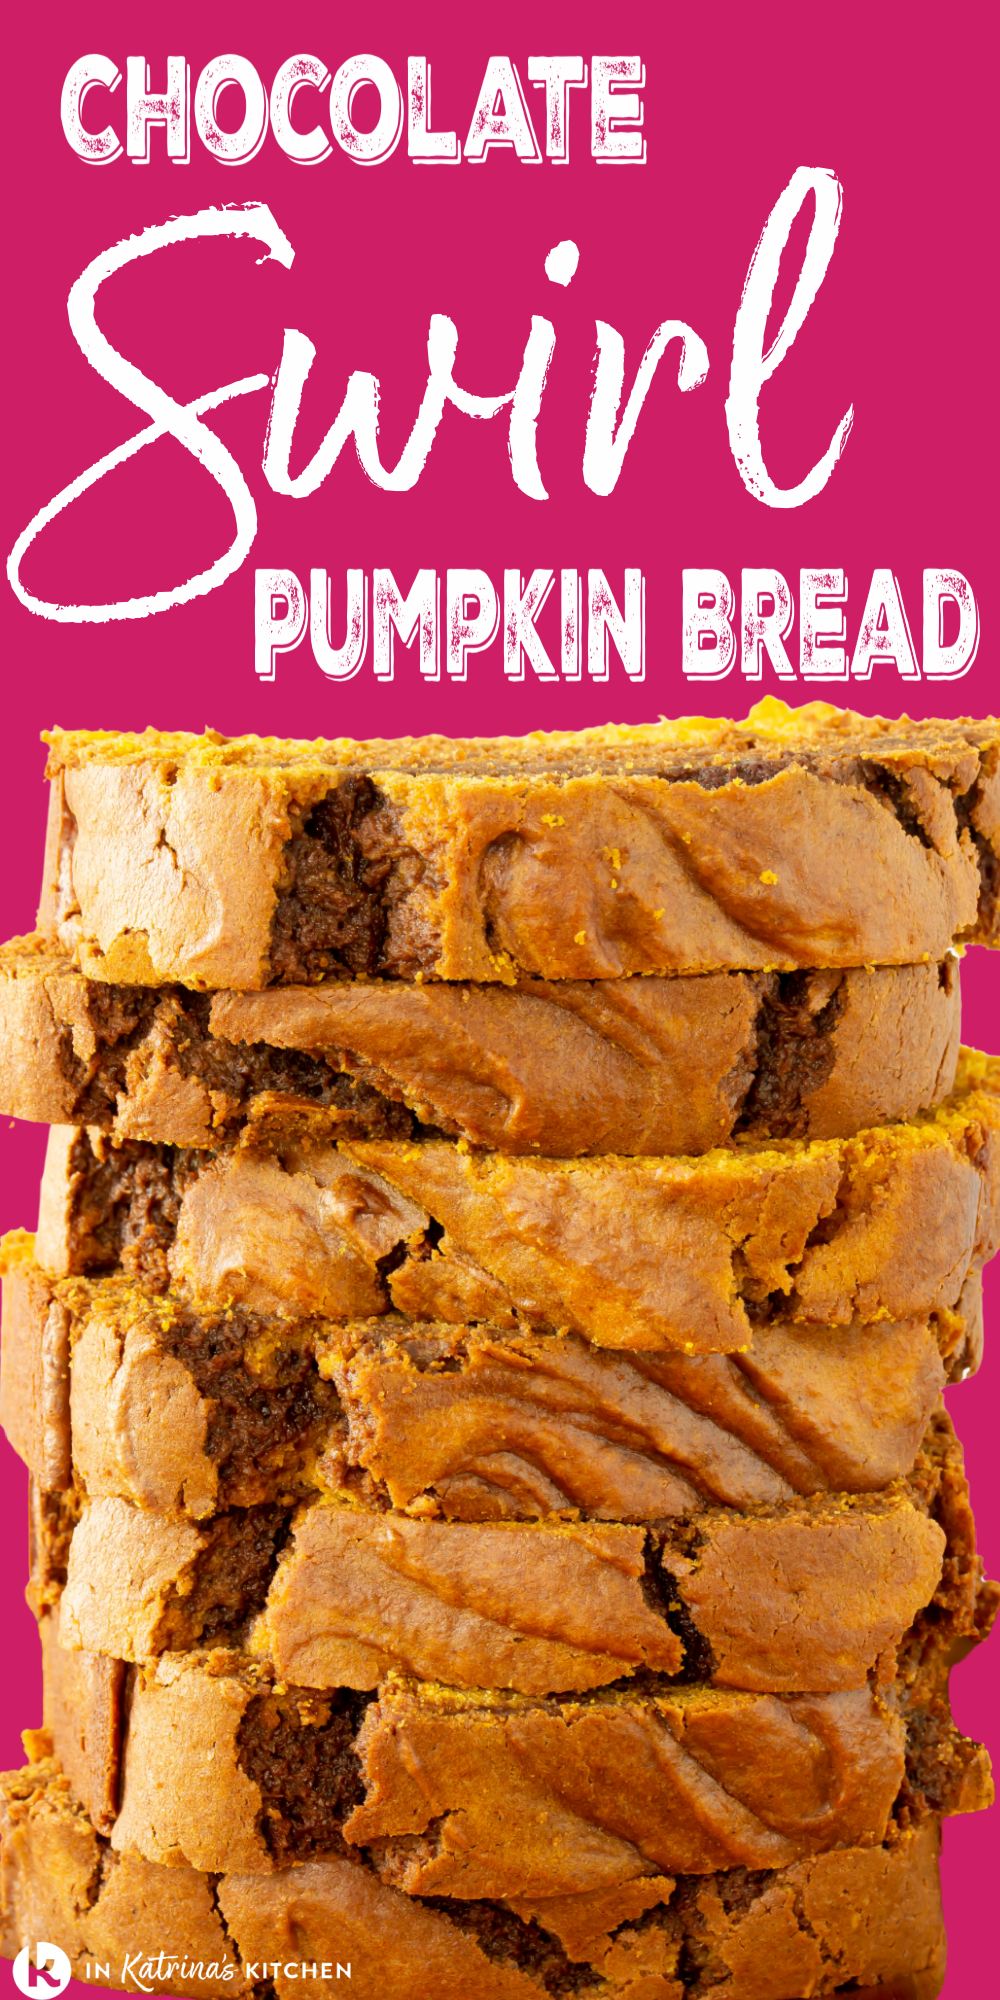 This Chocolate Swirl Pumpkin Bread recipe makes a fluffy, tender pumpkin bread loaf swirled with rich, fudgy chocolate layers. You can grab a slice as you're running out the door, or you can tuck a slice into your lunch box. Enjoy it with a cup of afternoon tea, or with some hot cocoa after dinner. Get the full recipe and PRO TIPS at In Katrina's Kitchen.